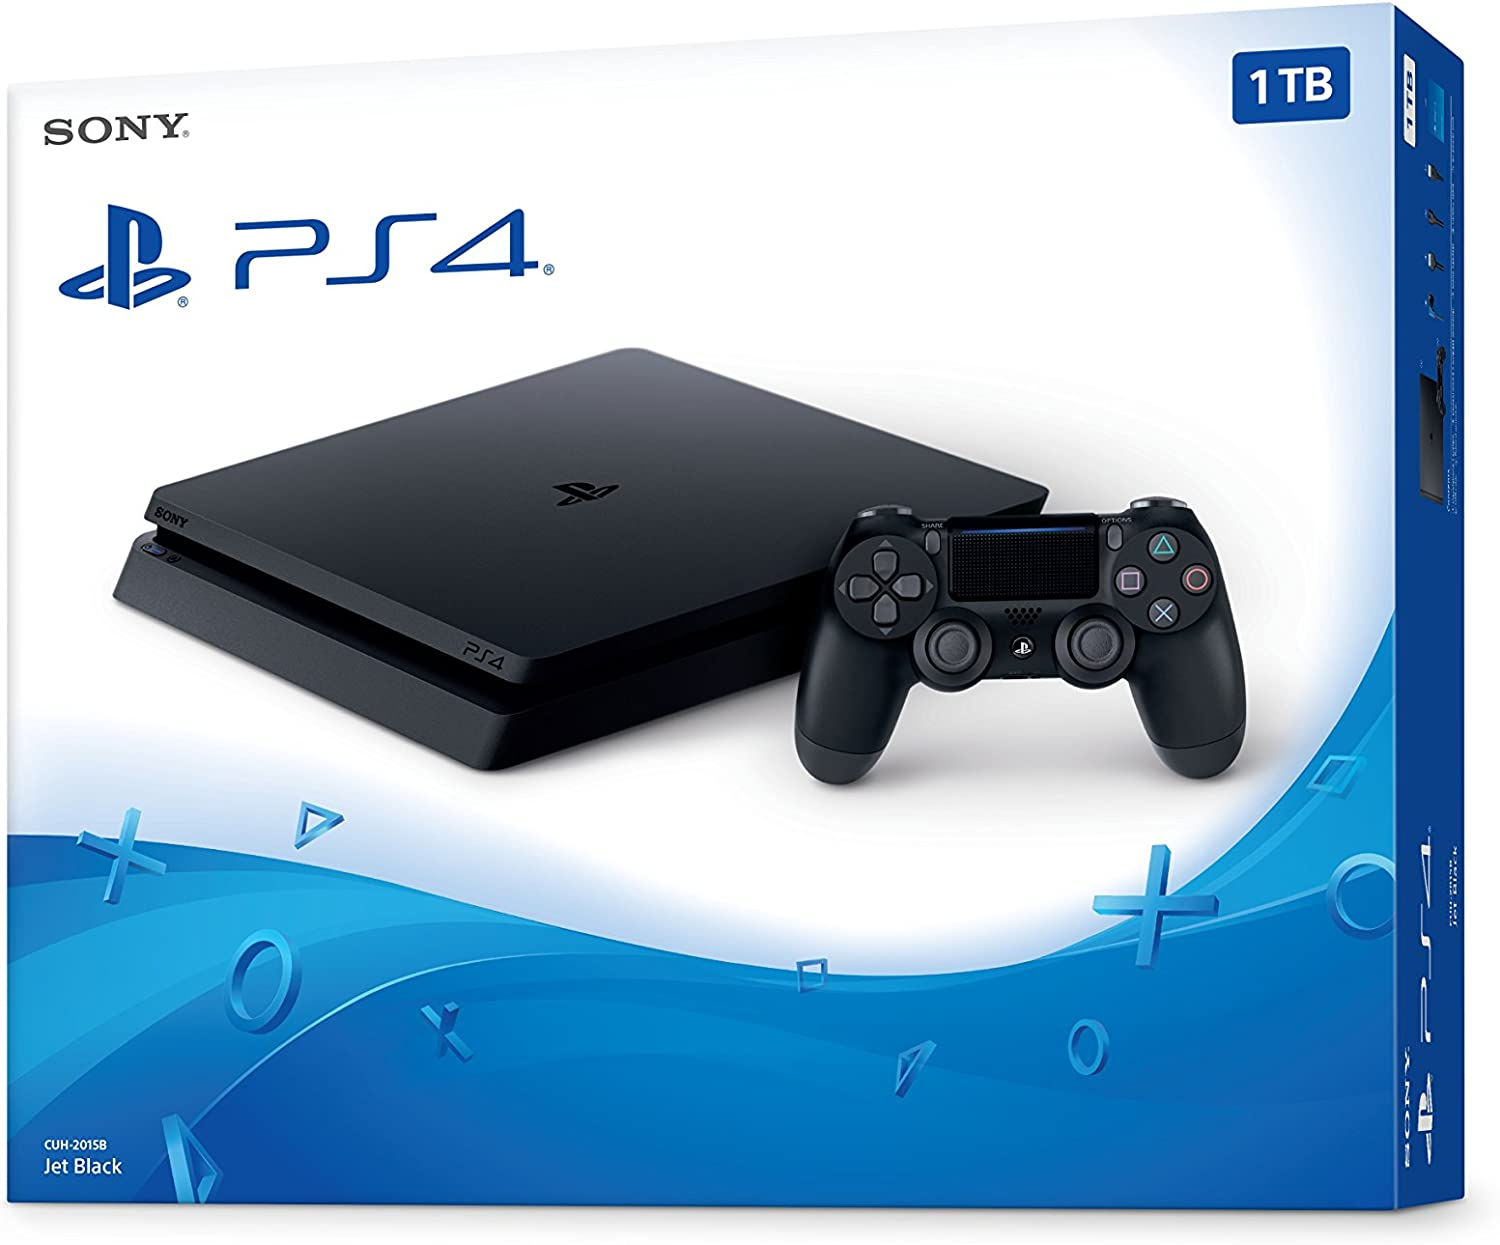 Amazon.com: PlayStation 4 Slim 1TB Console - Black (Renewed ...